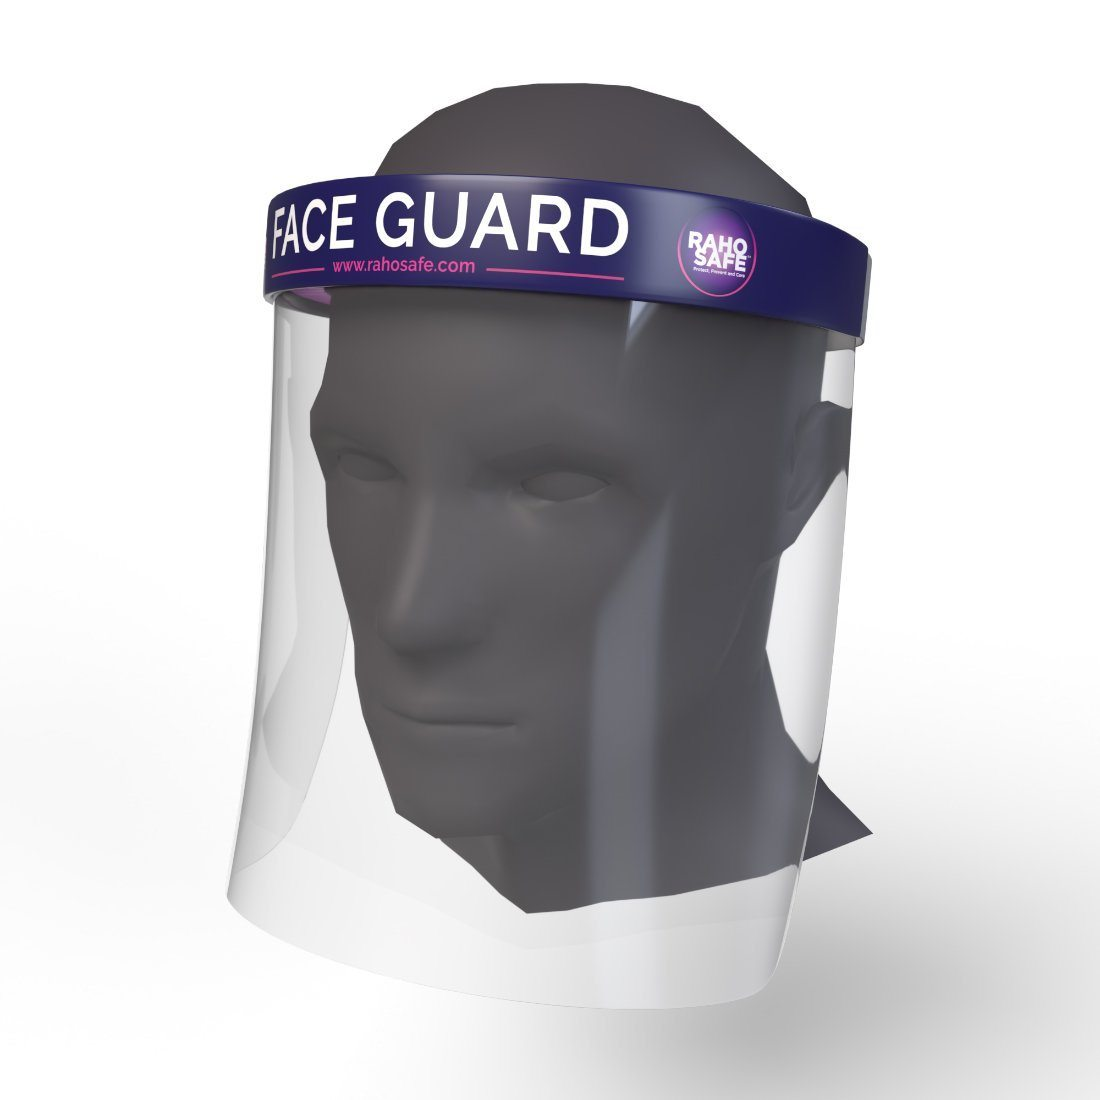 Face Guard (Pack of 4)